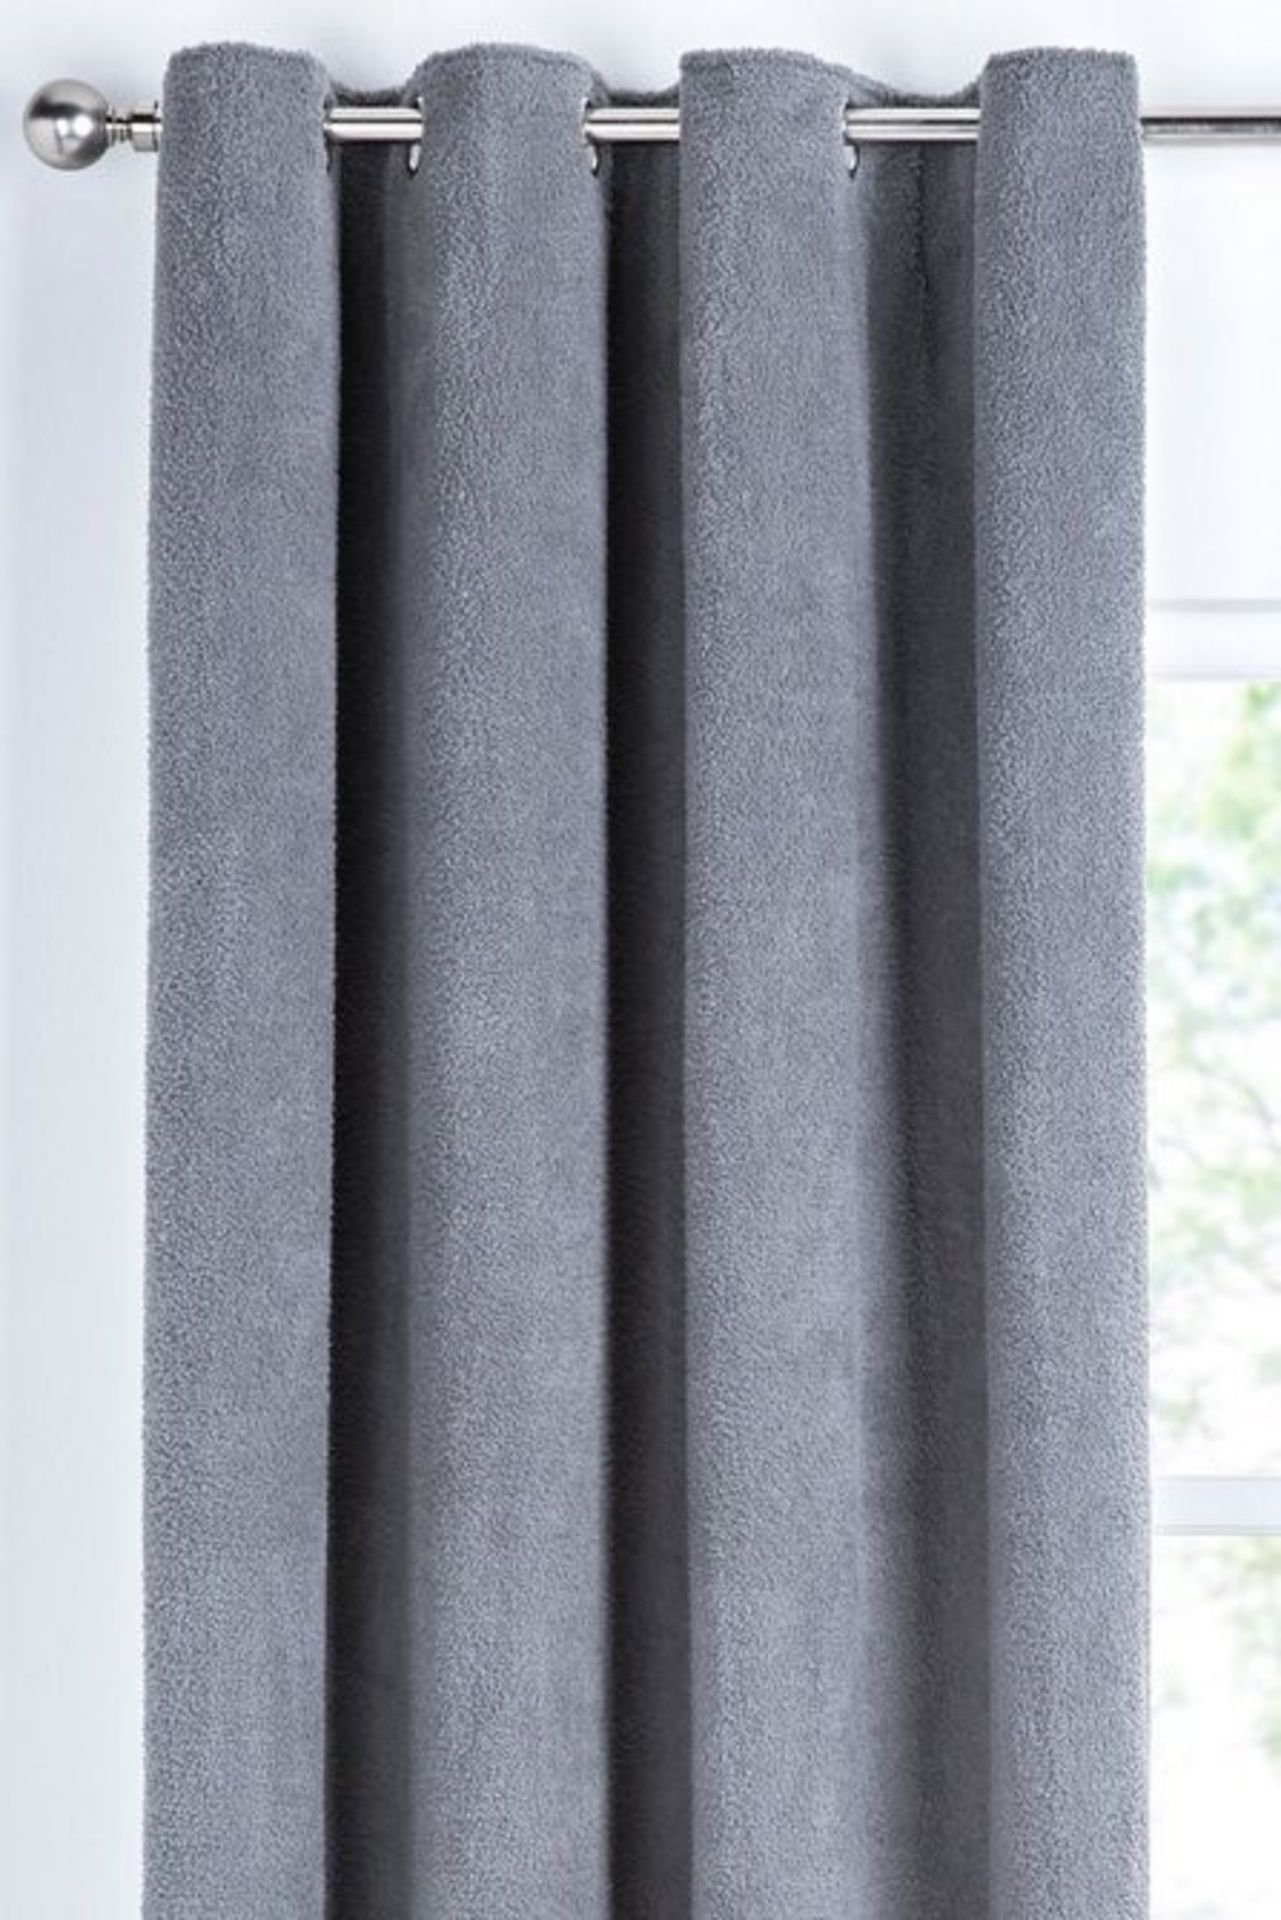 Lot 29 - 1 BAGGED COSY TEDDY EYELET CURTAINS IN GREY / SIZE UNKNOWN / RRP £33.99 (PUBLIC VIEWING AVAILABLE)